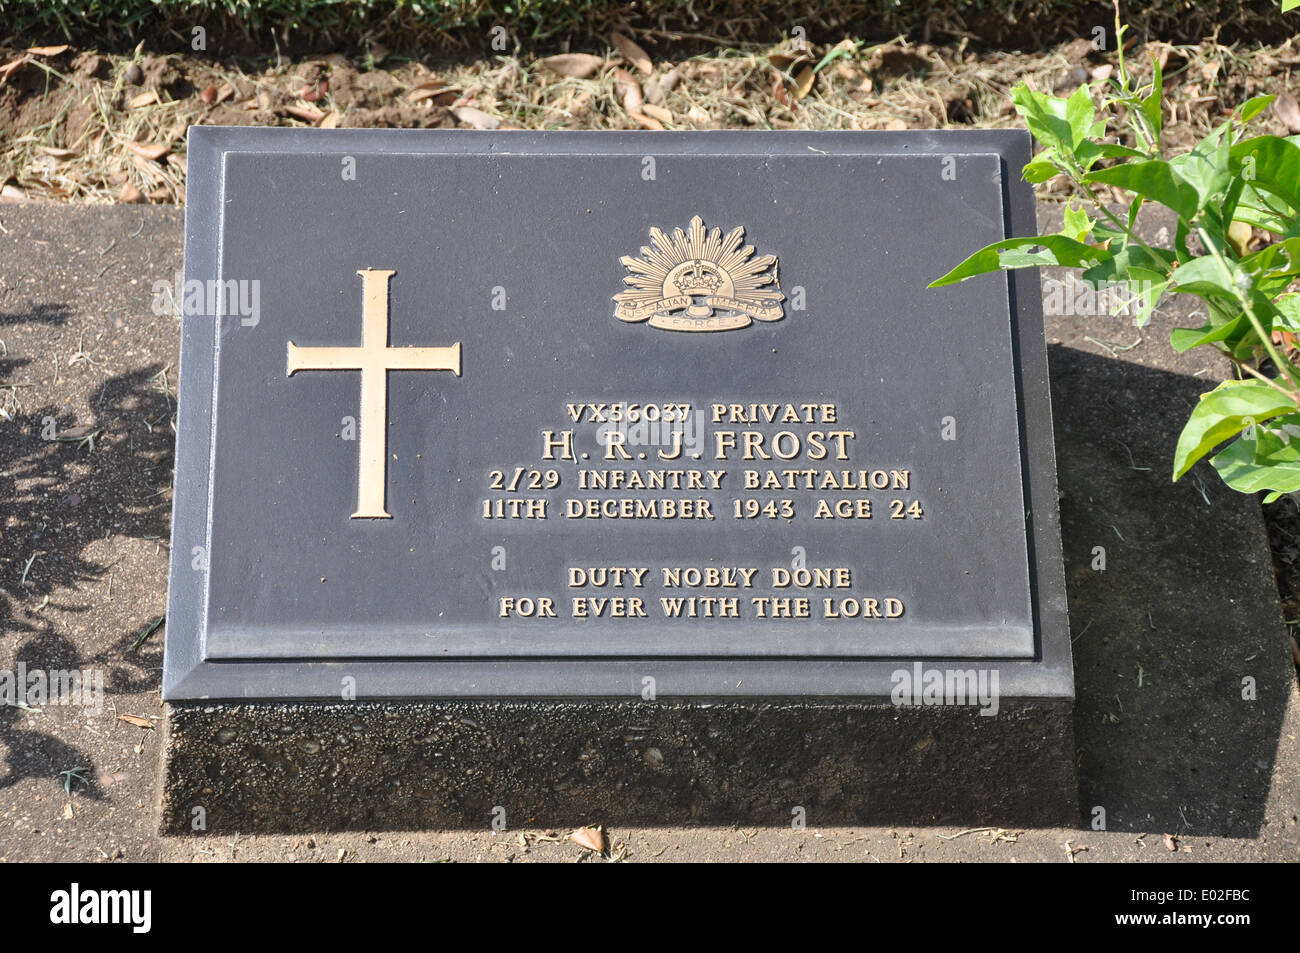 Headstone ,in The Kanchanaburi War Cemetery, of an Australian soldier, who died on the Thai - Burma Railway during WW ll. - Stock Image